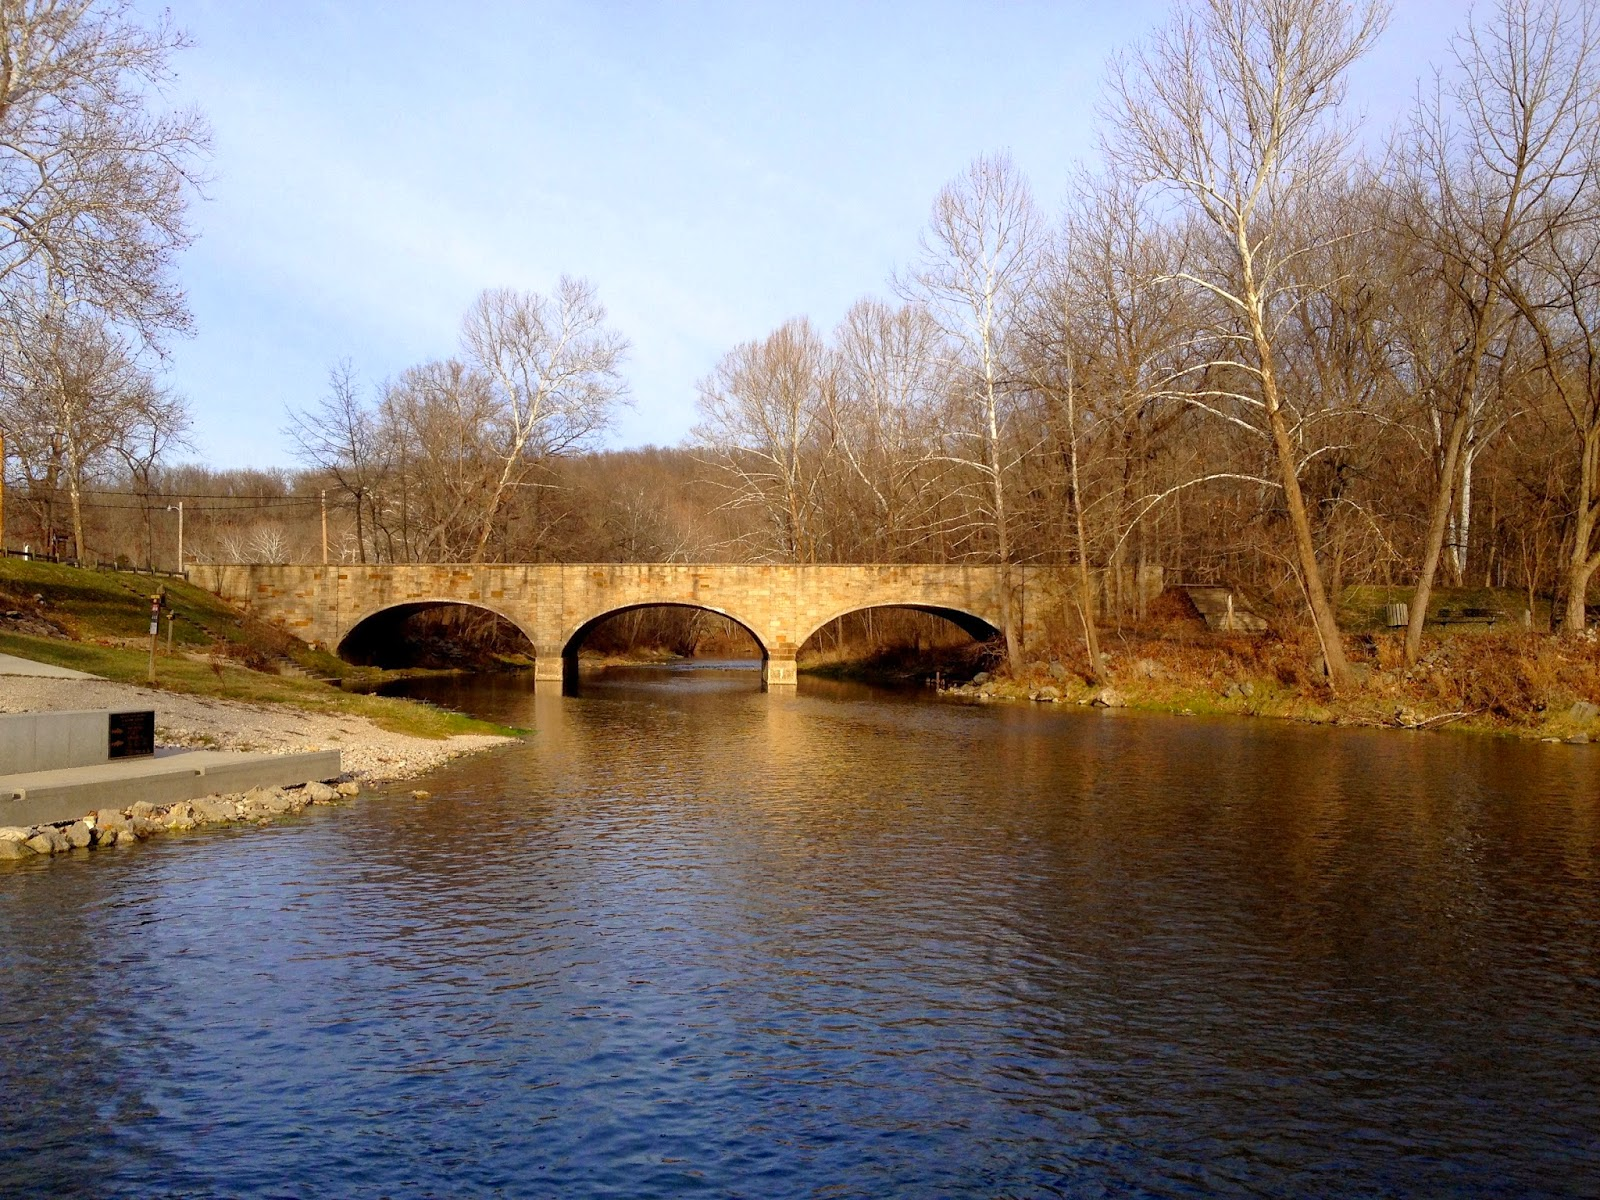 Ozark fly fishing january 2015 new year at the bennett for Bennett springs trout fishing